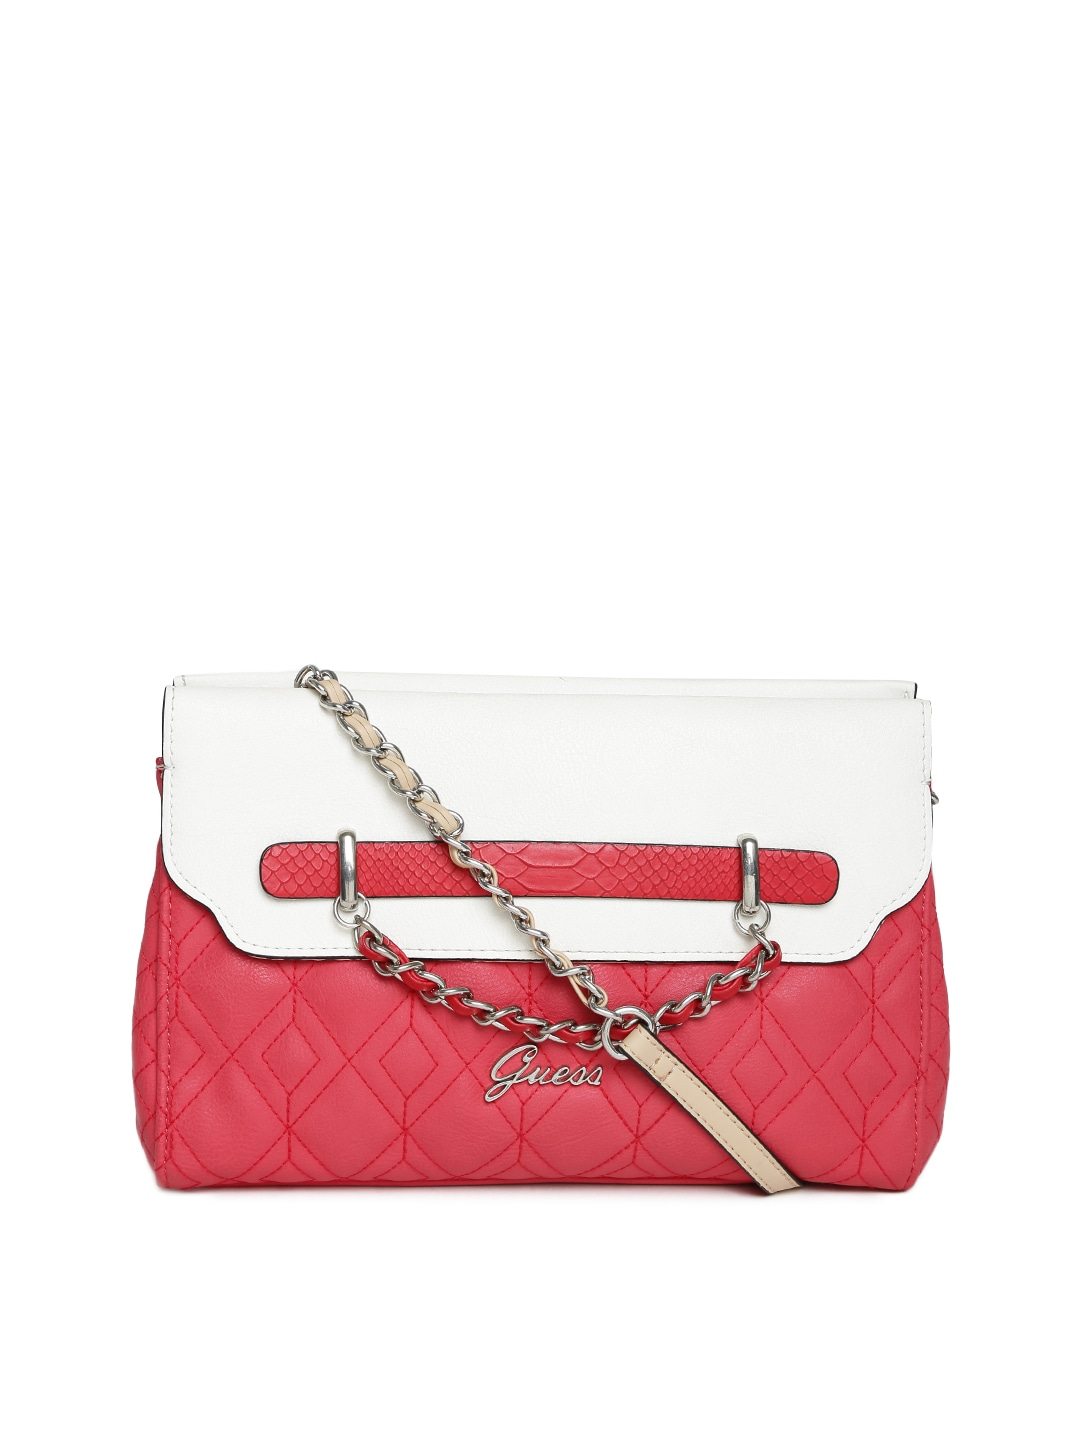 guess sling bags bags and wallets - Price list in India  c18c669dd9a8b